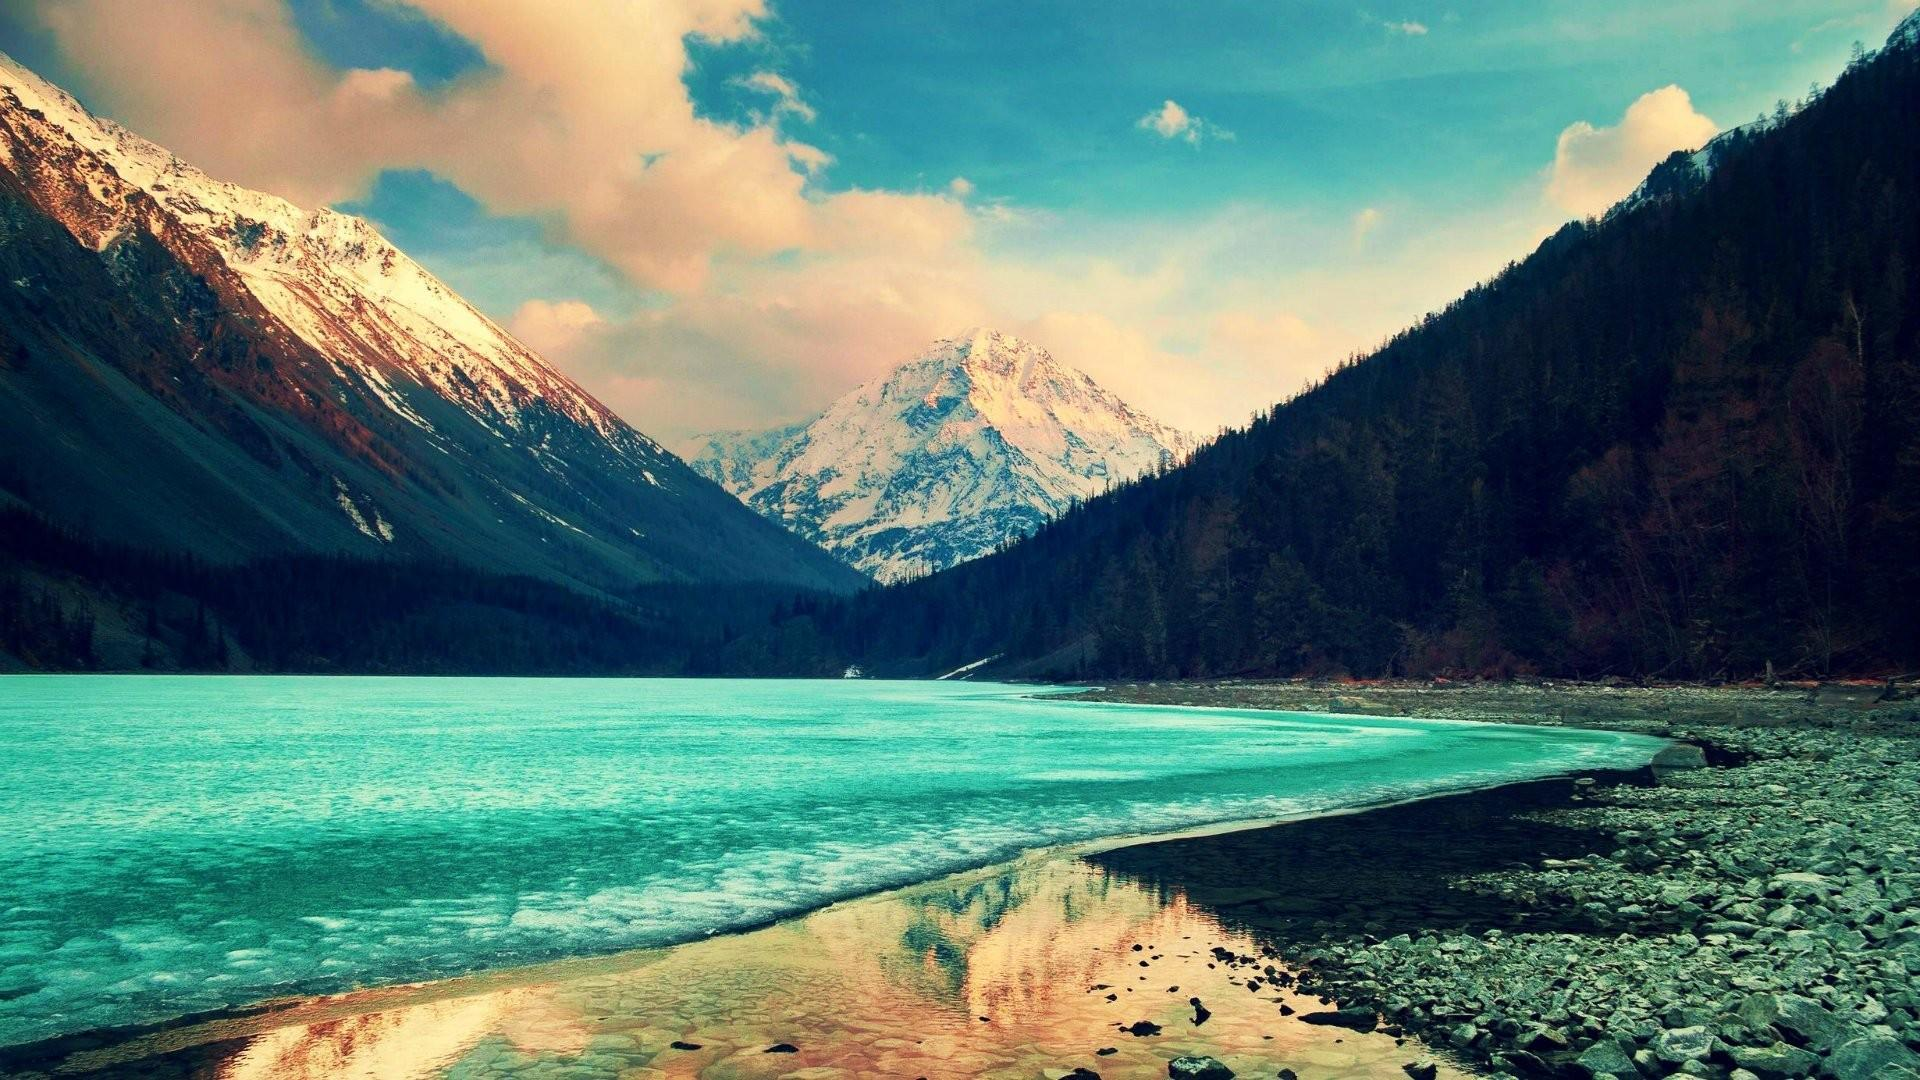 Mountain Landscape Nature Wallpapers Wallpaper Cave